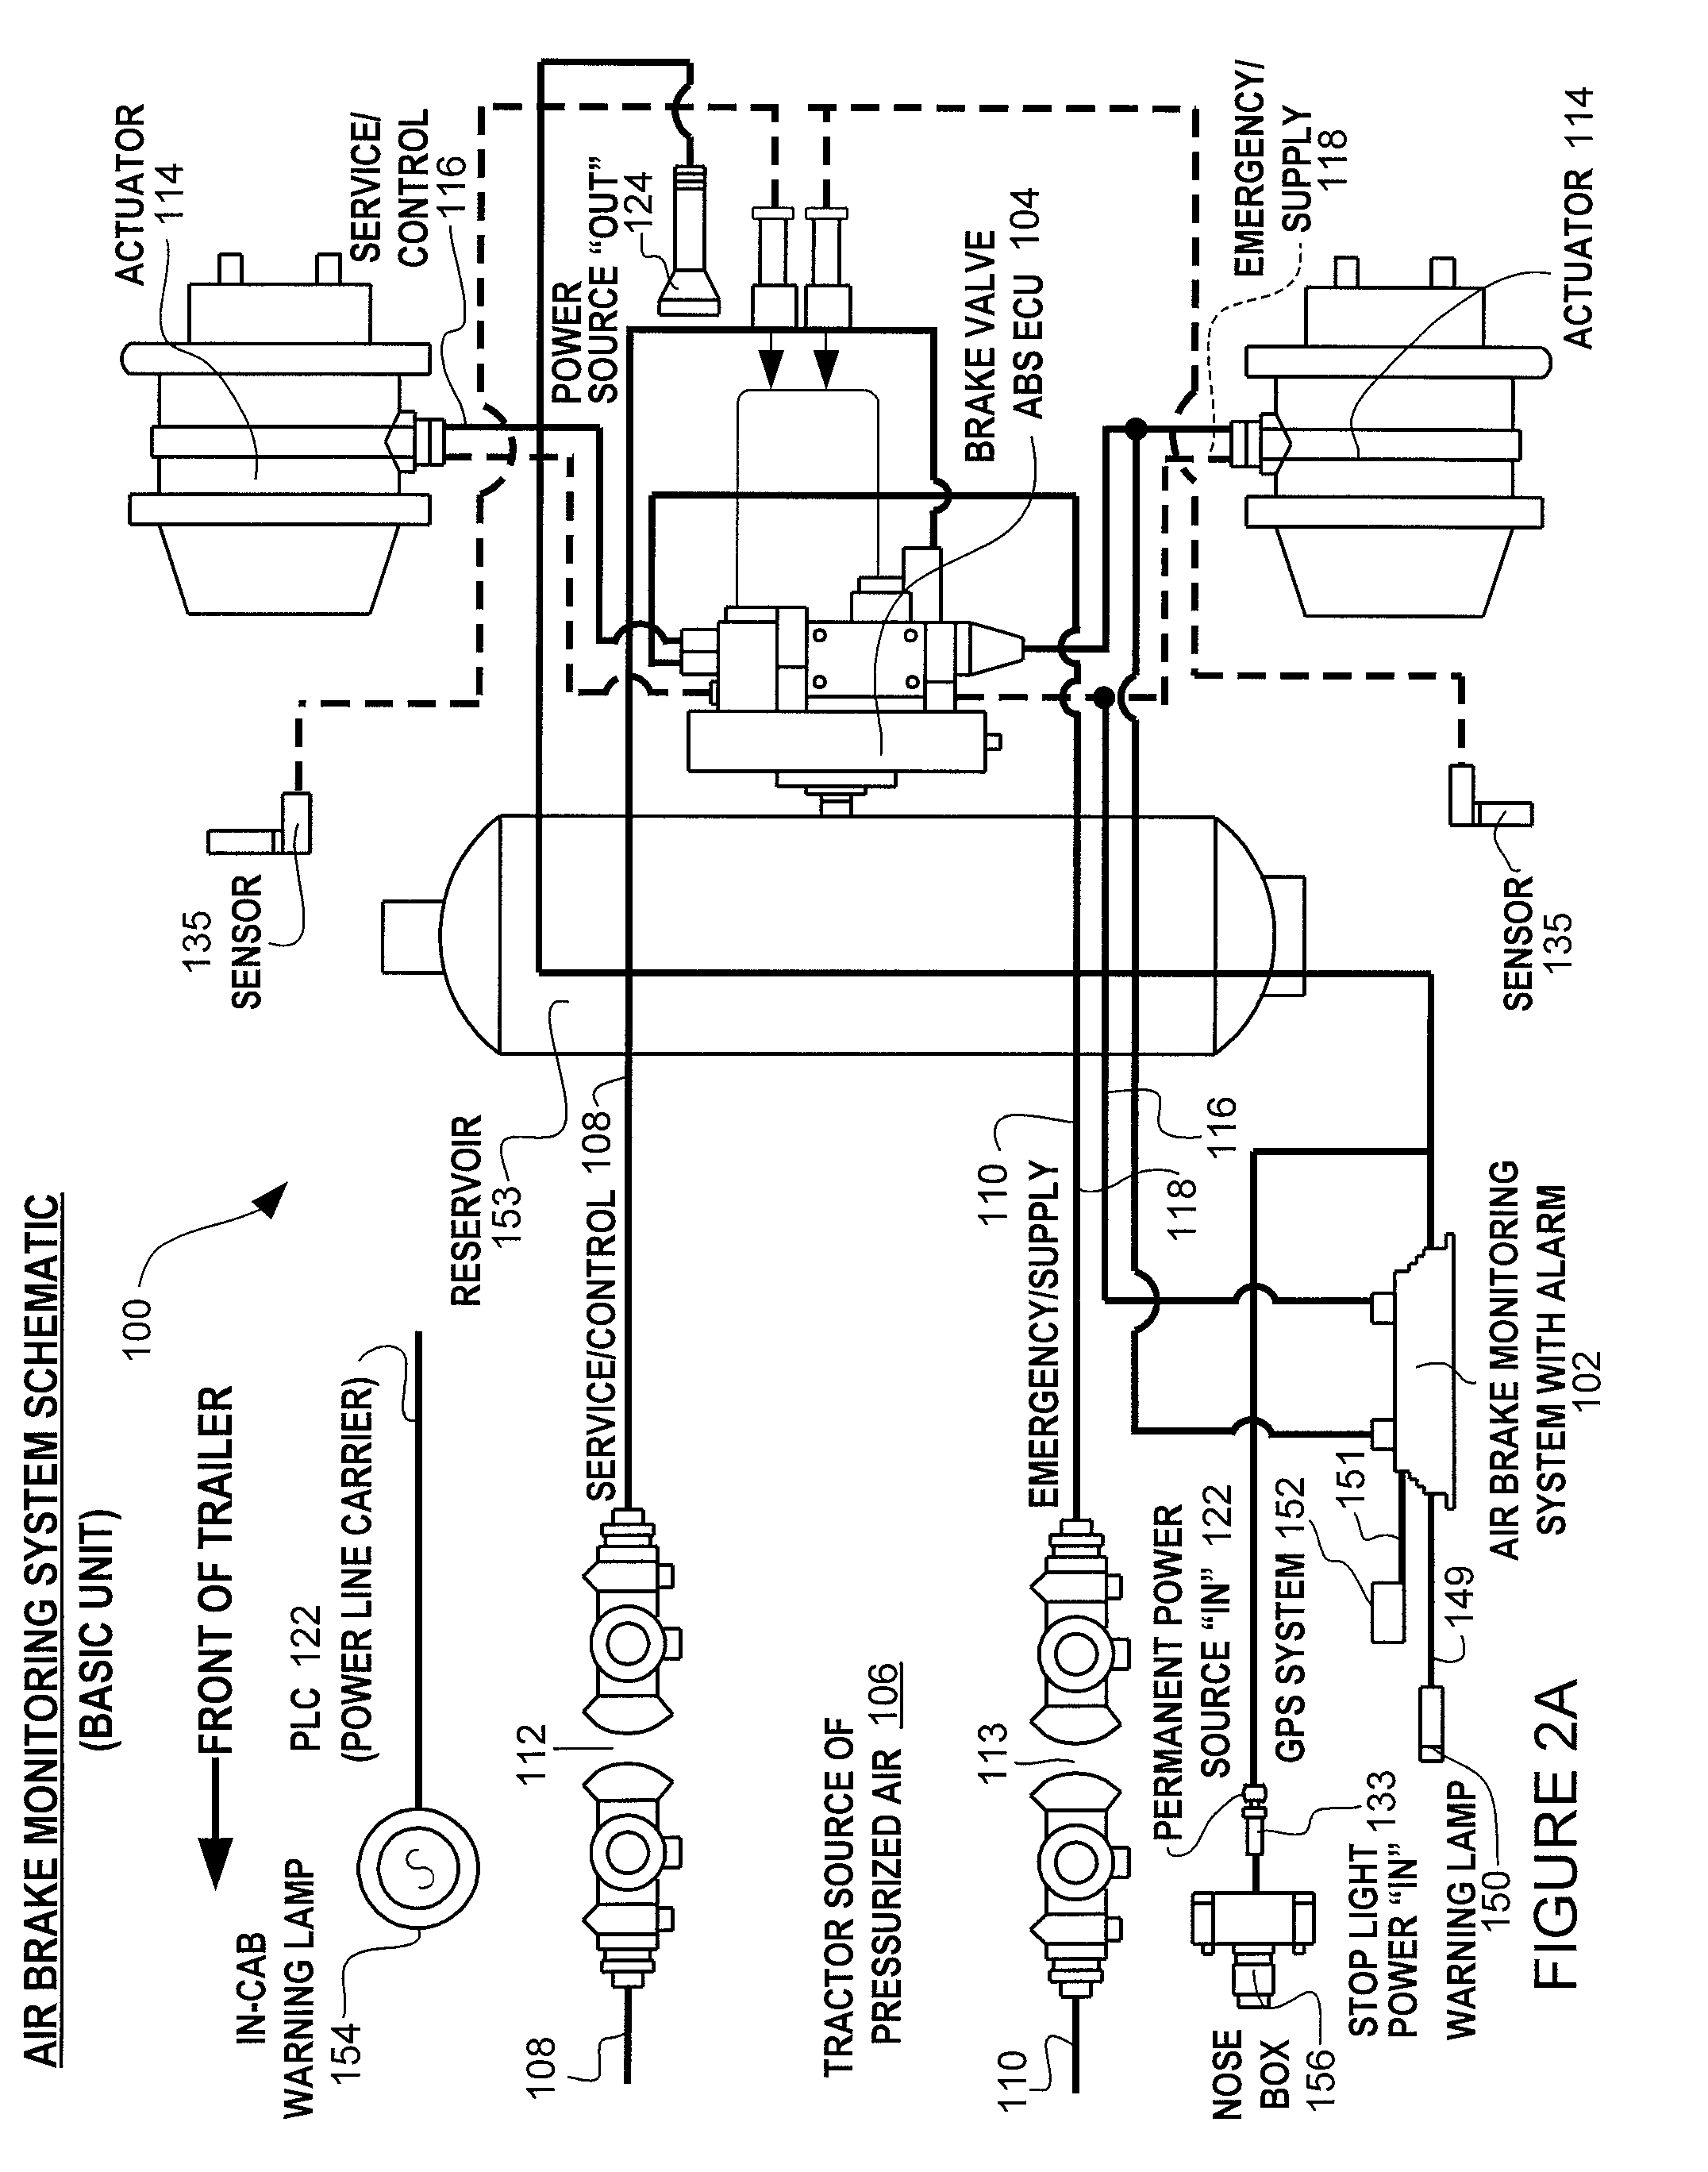 DIAGRAM] Meritor Wabco Wiring Diagram FULL Version HD Quality Wiring Diagram  - ZFUSER6717.HOTELBISCETTI.IThotelbiscetti.it